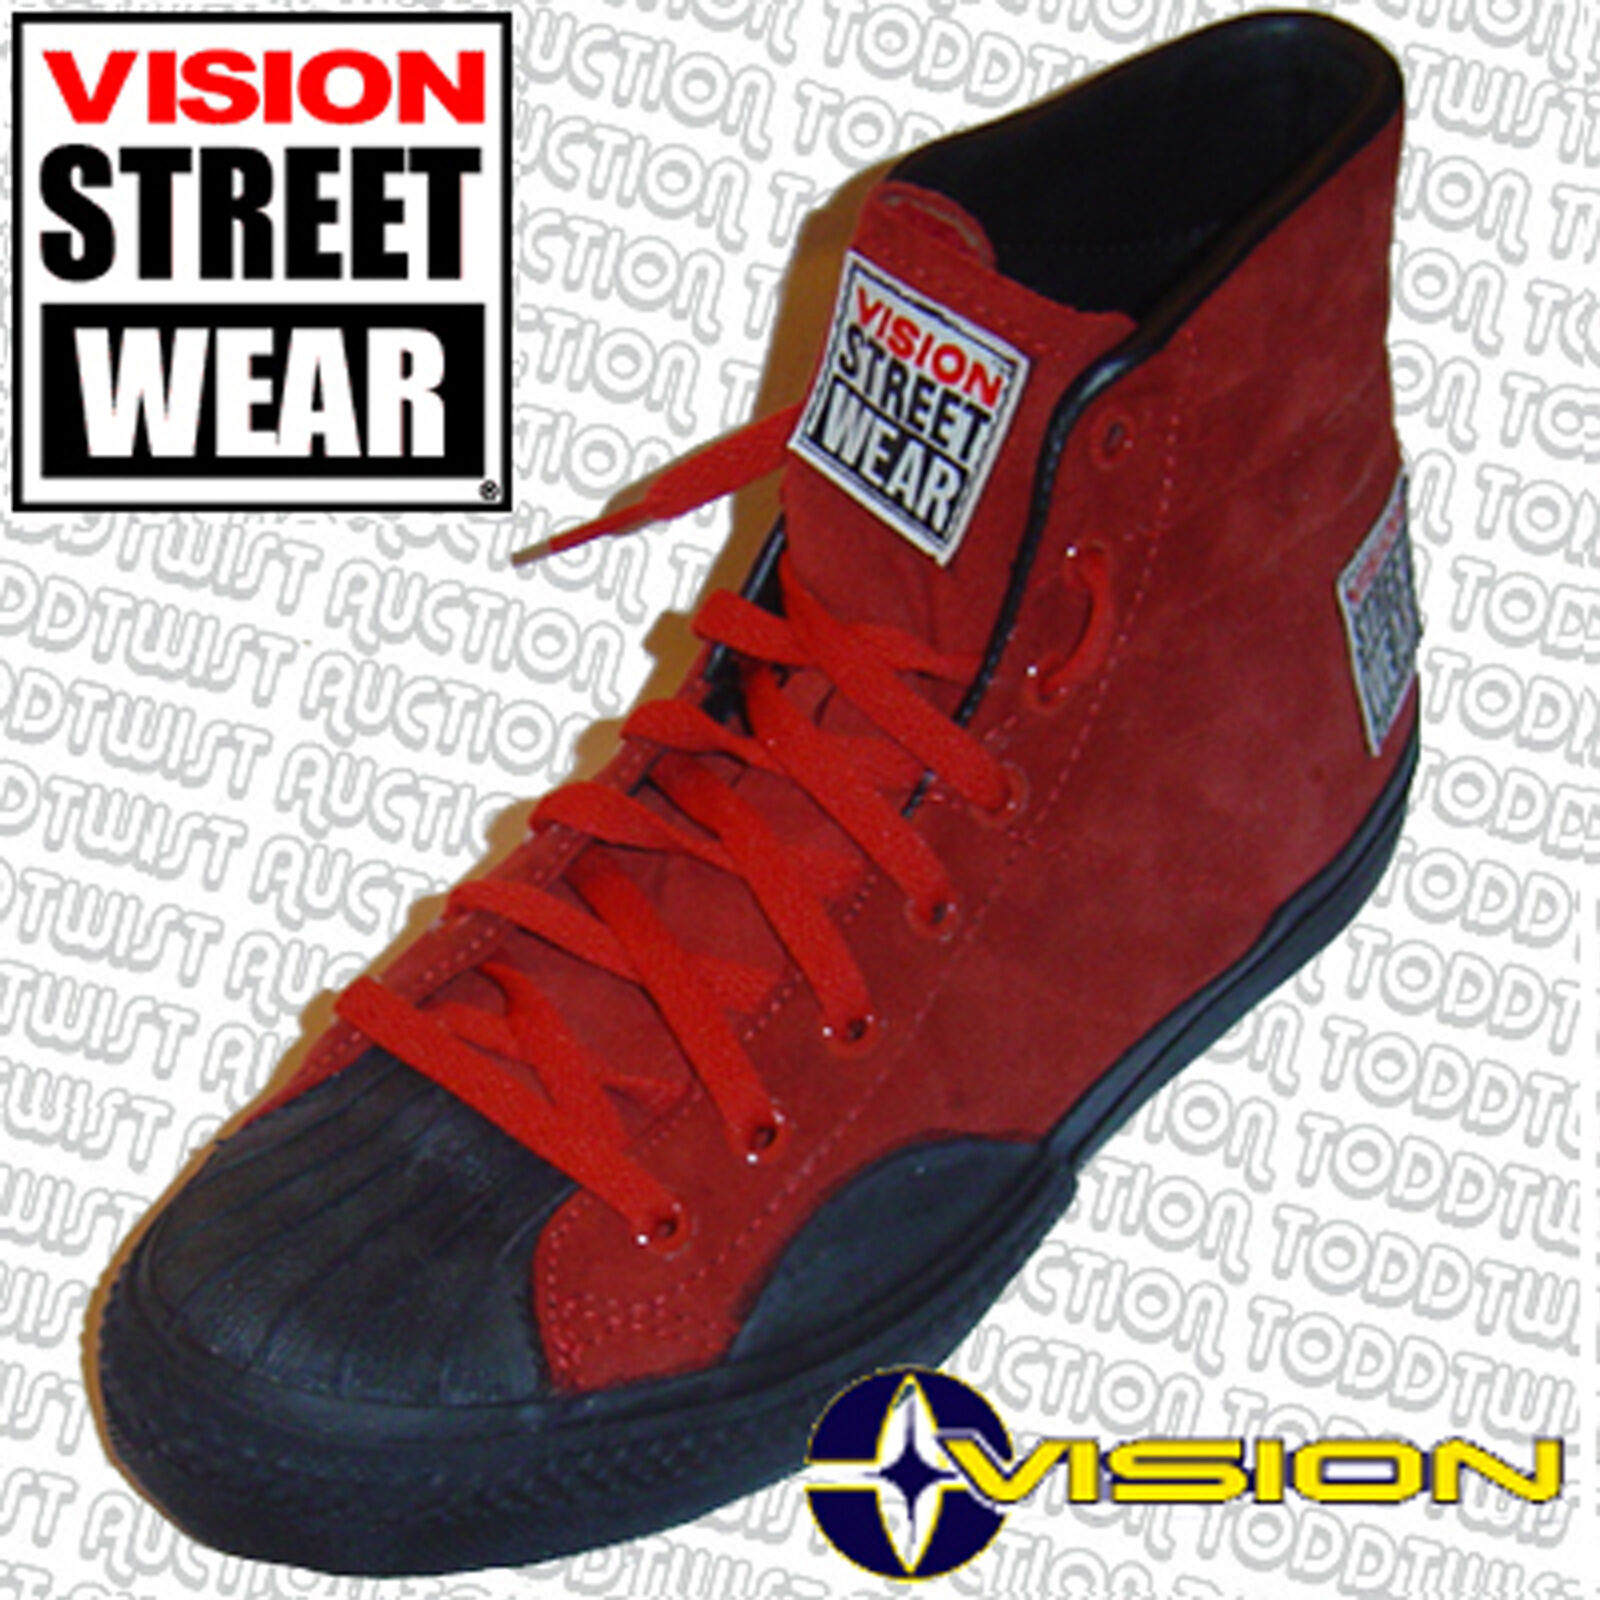 VISION STREET WEAR Suede '80s Skateboard Shoes Red Size Hi Tops - Size Red 3 UK / 4 USA 8fb230